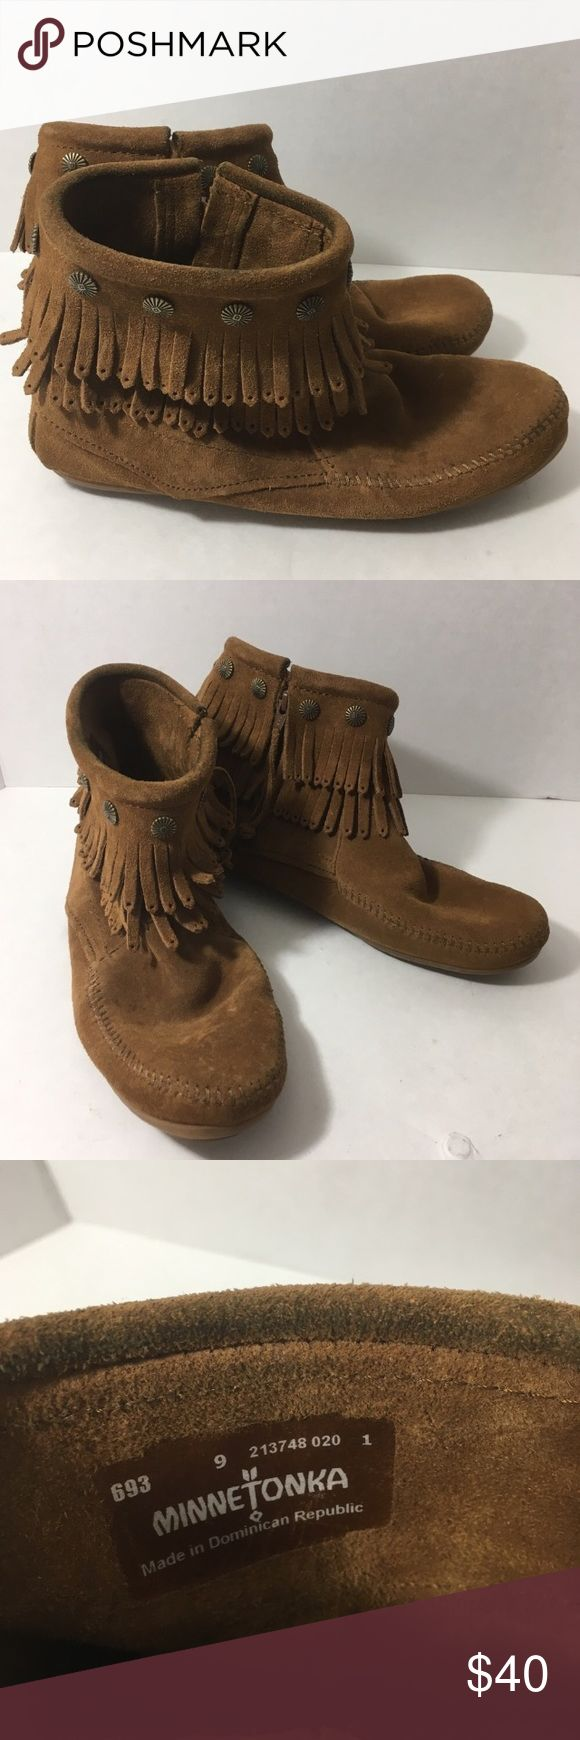 Minnetonka Fringe Booties Suede boots with fringe and southeweater cabochon hardware. Light spot on heel bitnotherwose excellent condition. Textured rubber sole—ultra comfortable and cute! Minnetonka Shoes Ankle Boots & Booties